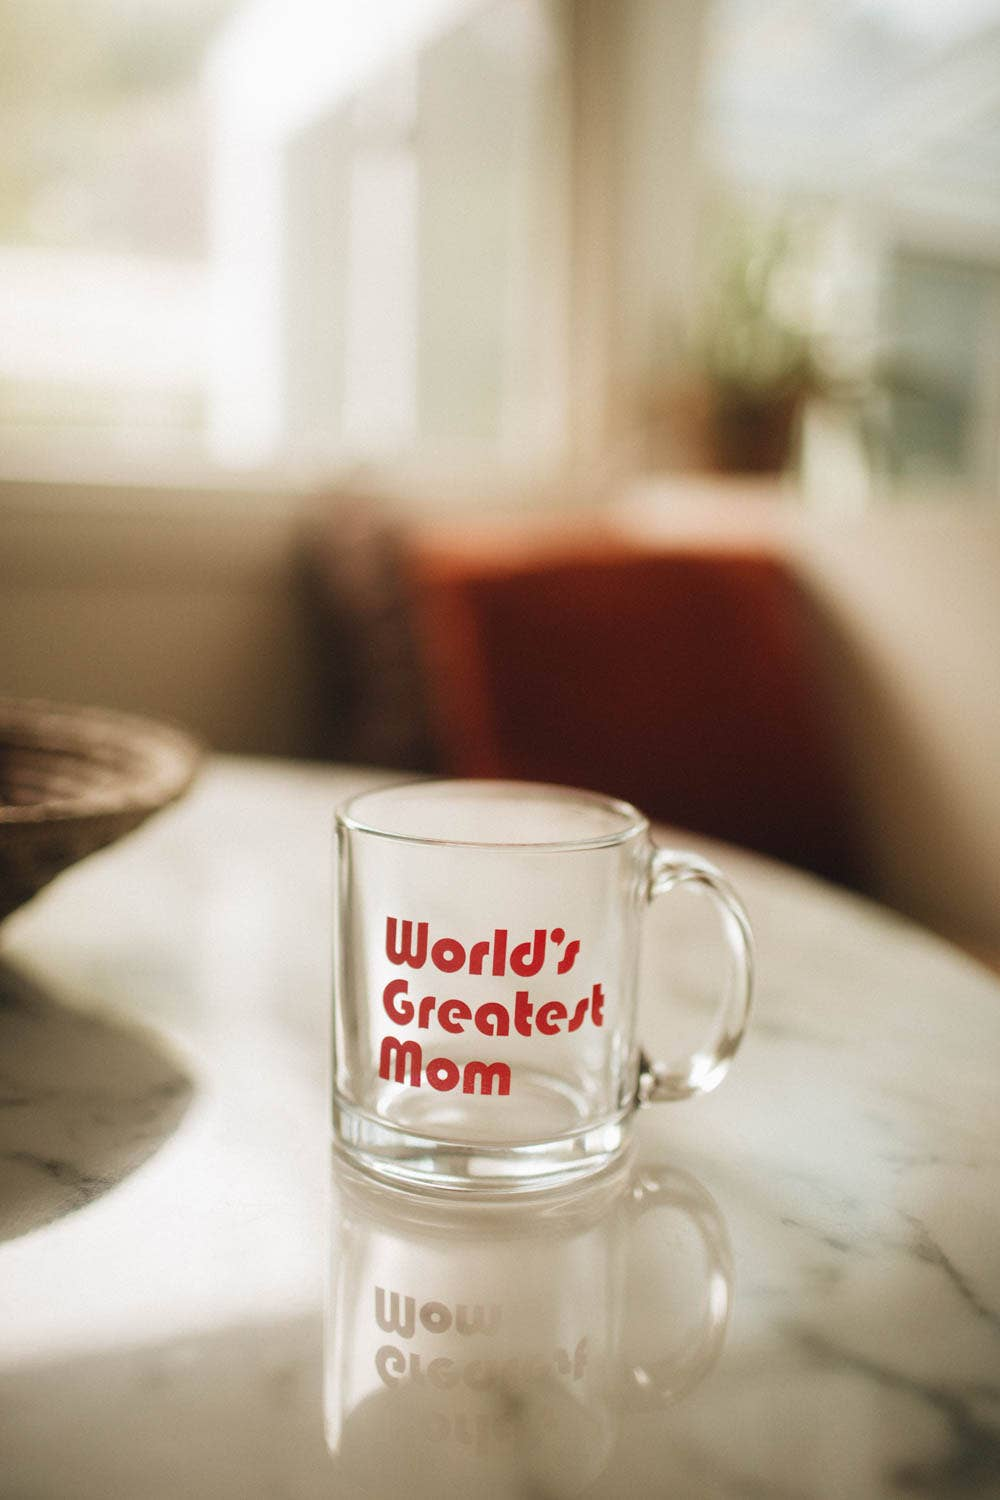 World's Greatest Mom, mug